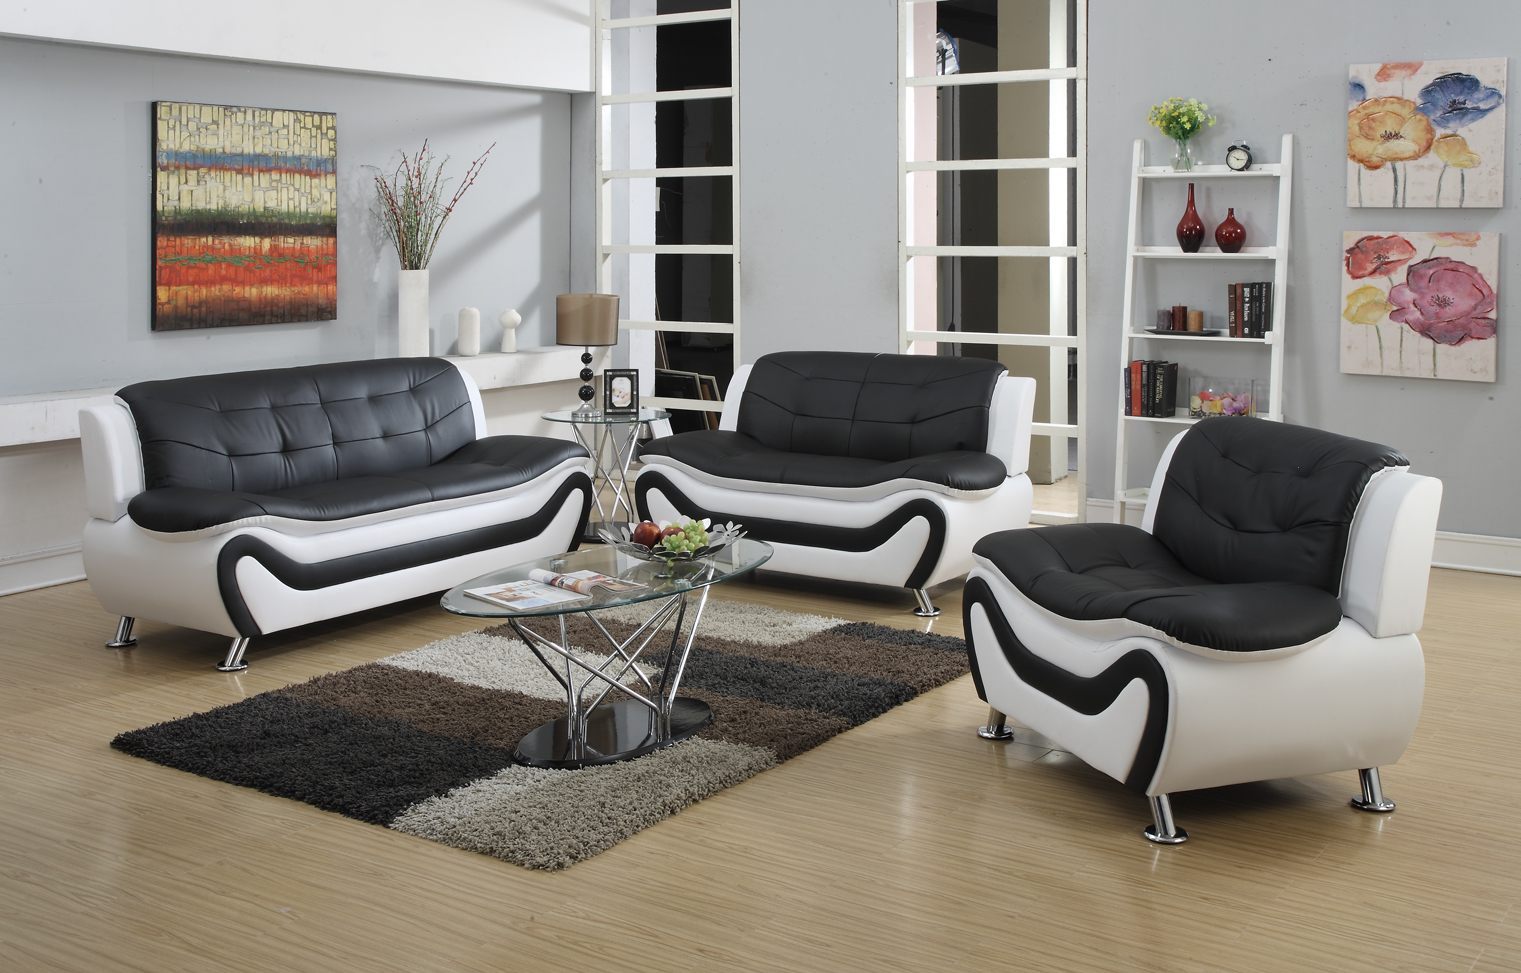 Ava Furniture Houston Cheap Discount Contemporary Furniture in